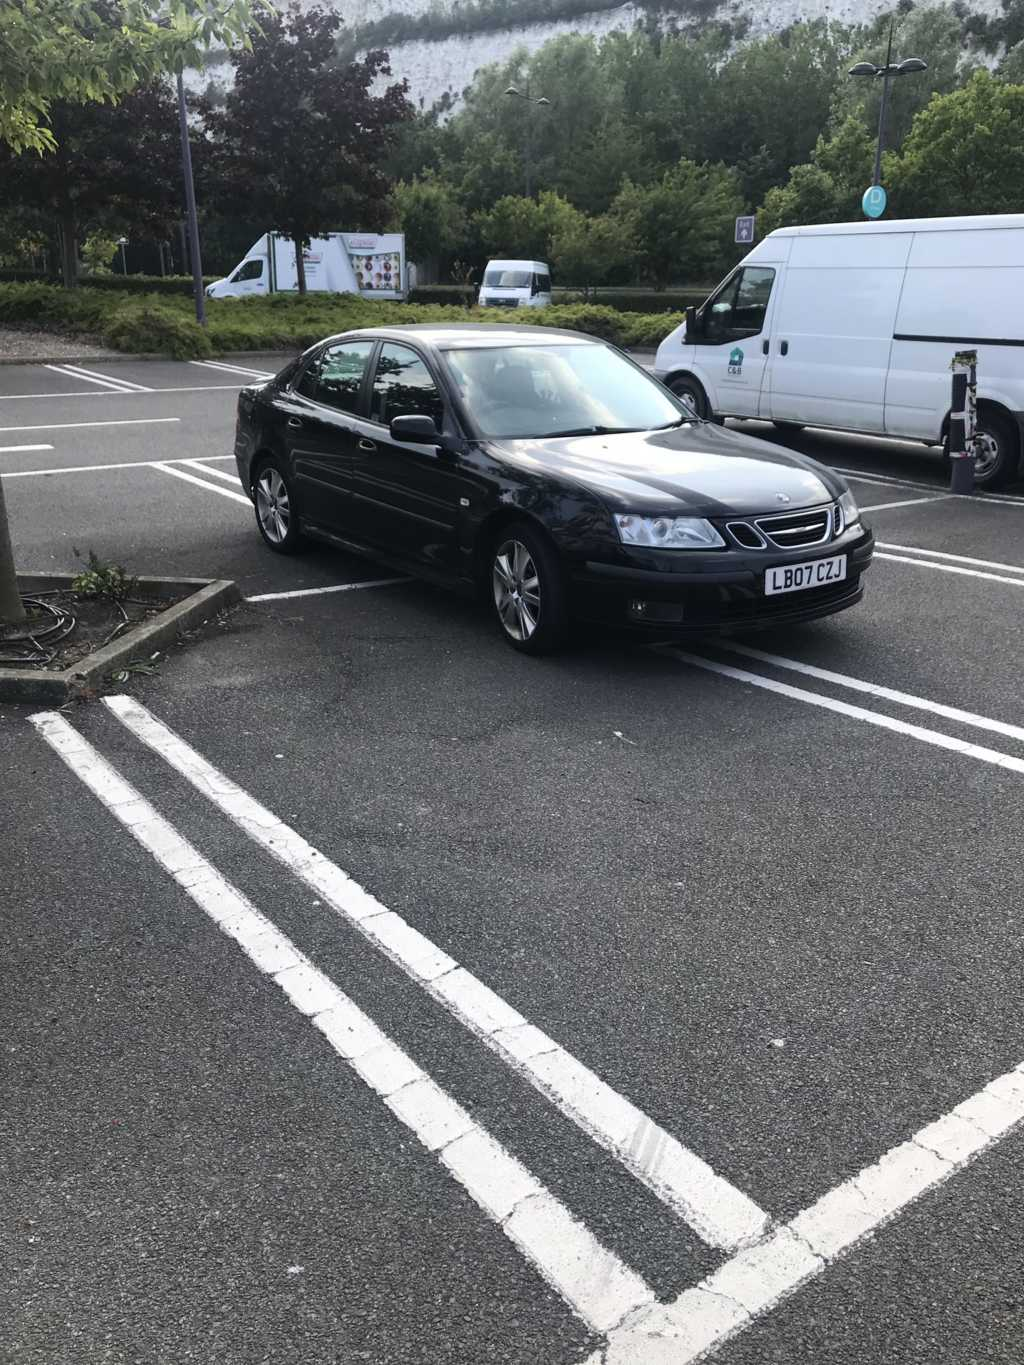 LB07 CZJ displaying Inconsiderate Parking